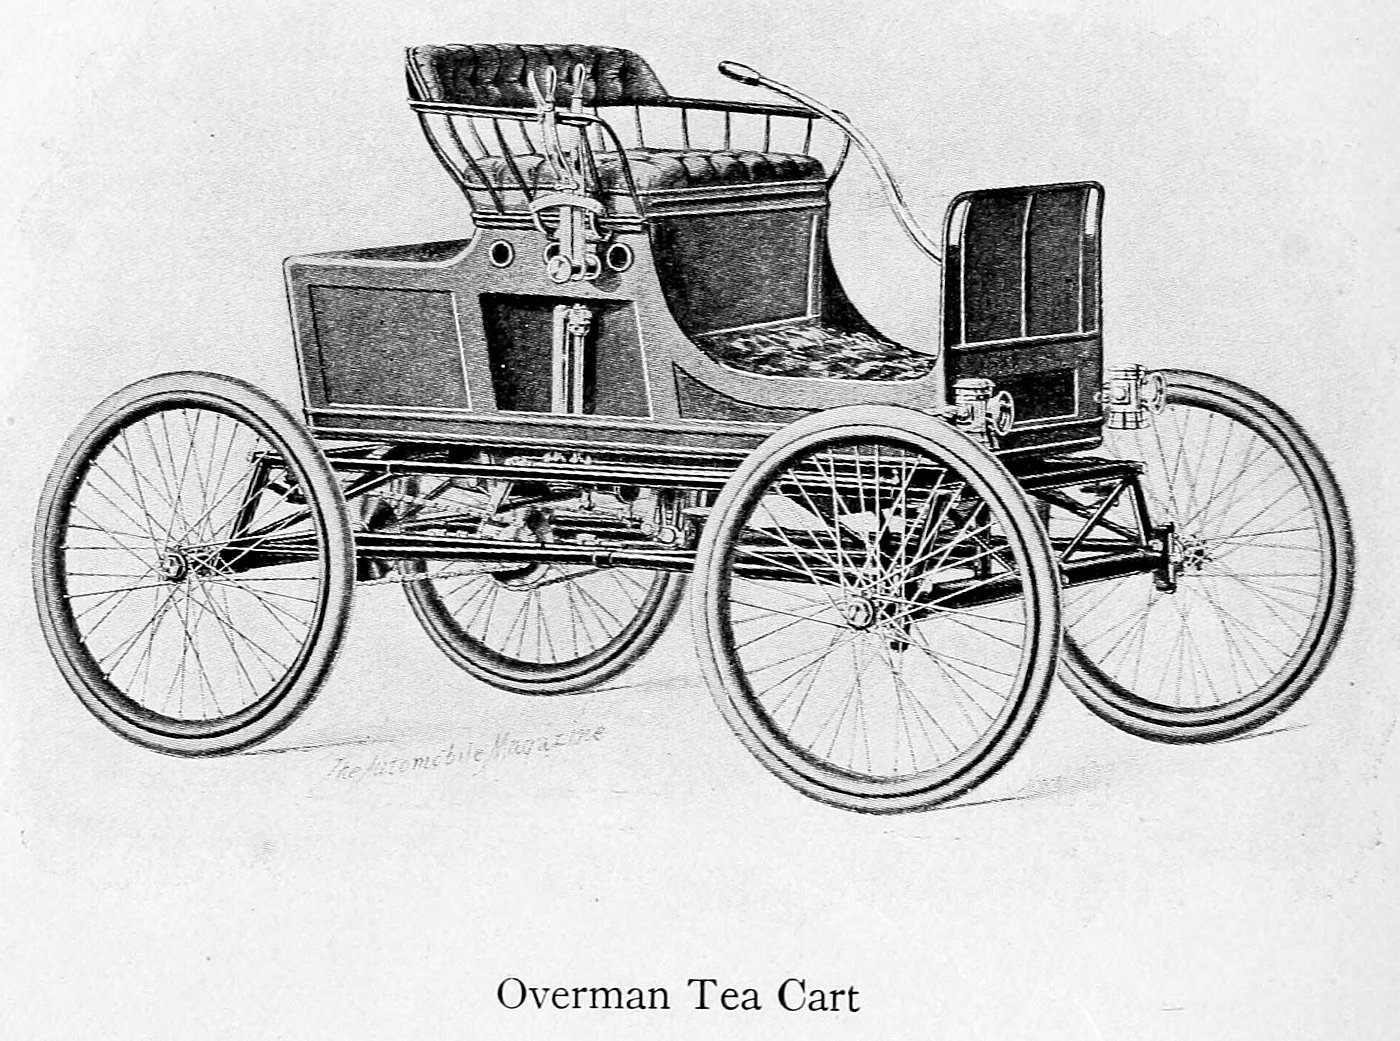 Overman Tea Cart (1899)